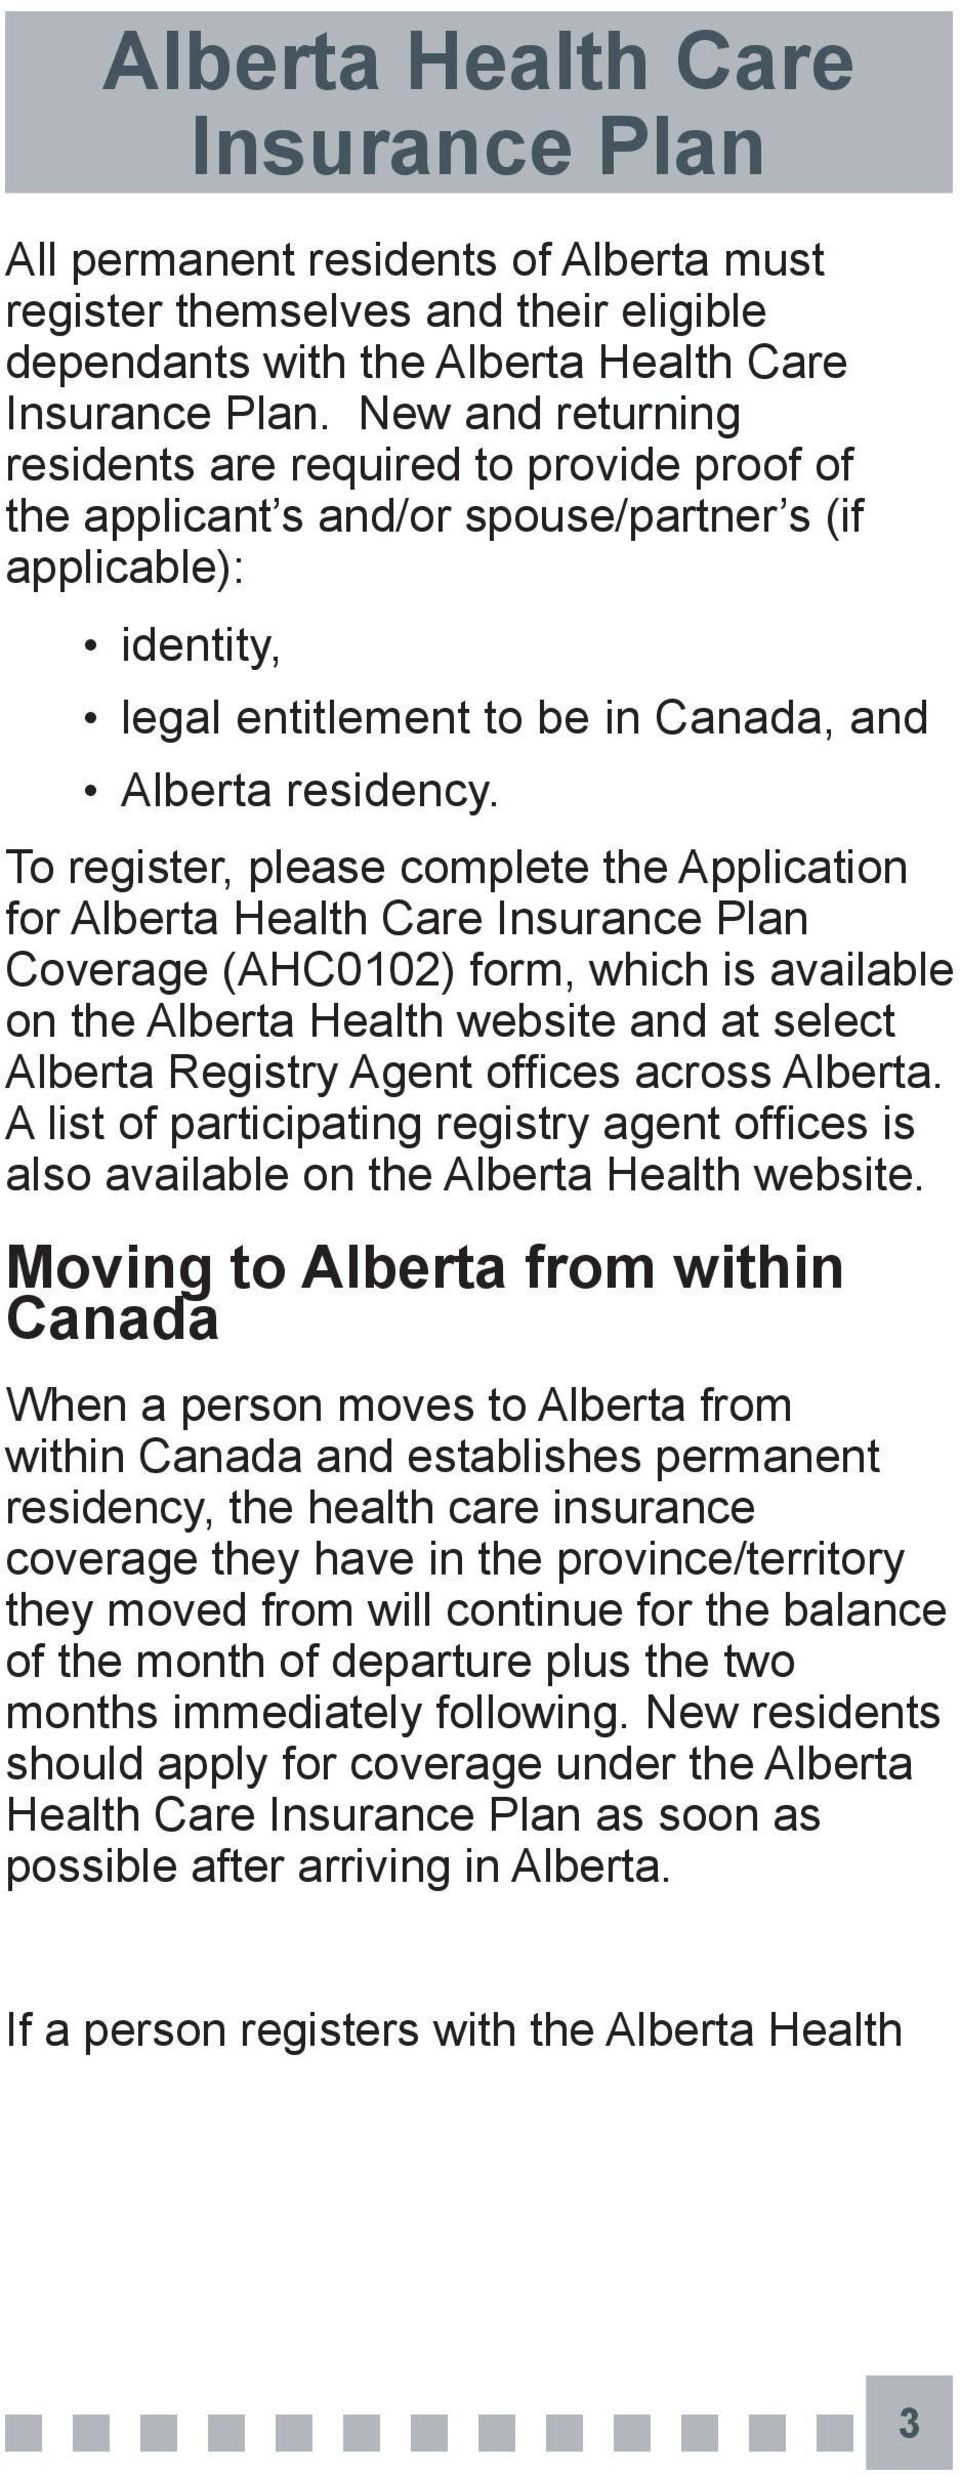 To register, please complete the Application for Alberta Health Care Coverage (AHC0102) form, which is available on the Alberta Health website and at select Alberta Registry Agent offices across